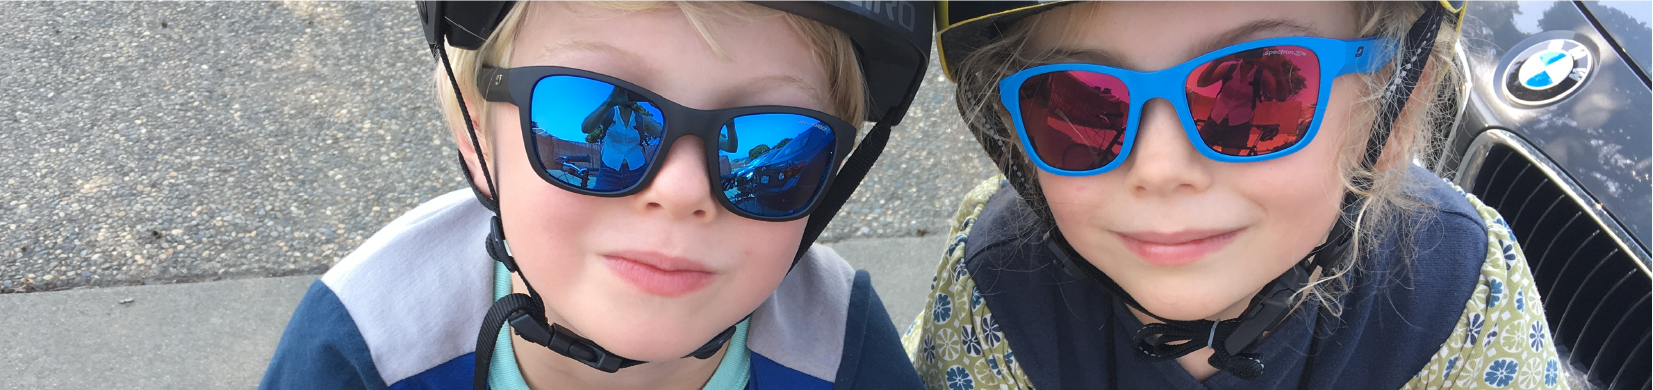 Photo of two of our staffer's children out on a family bike ride.